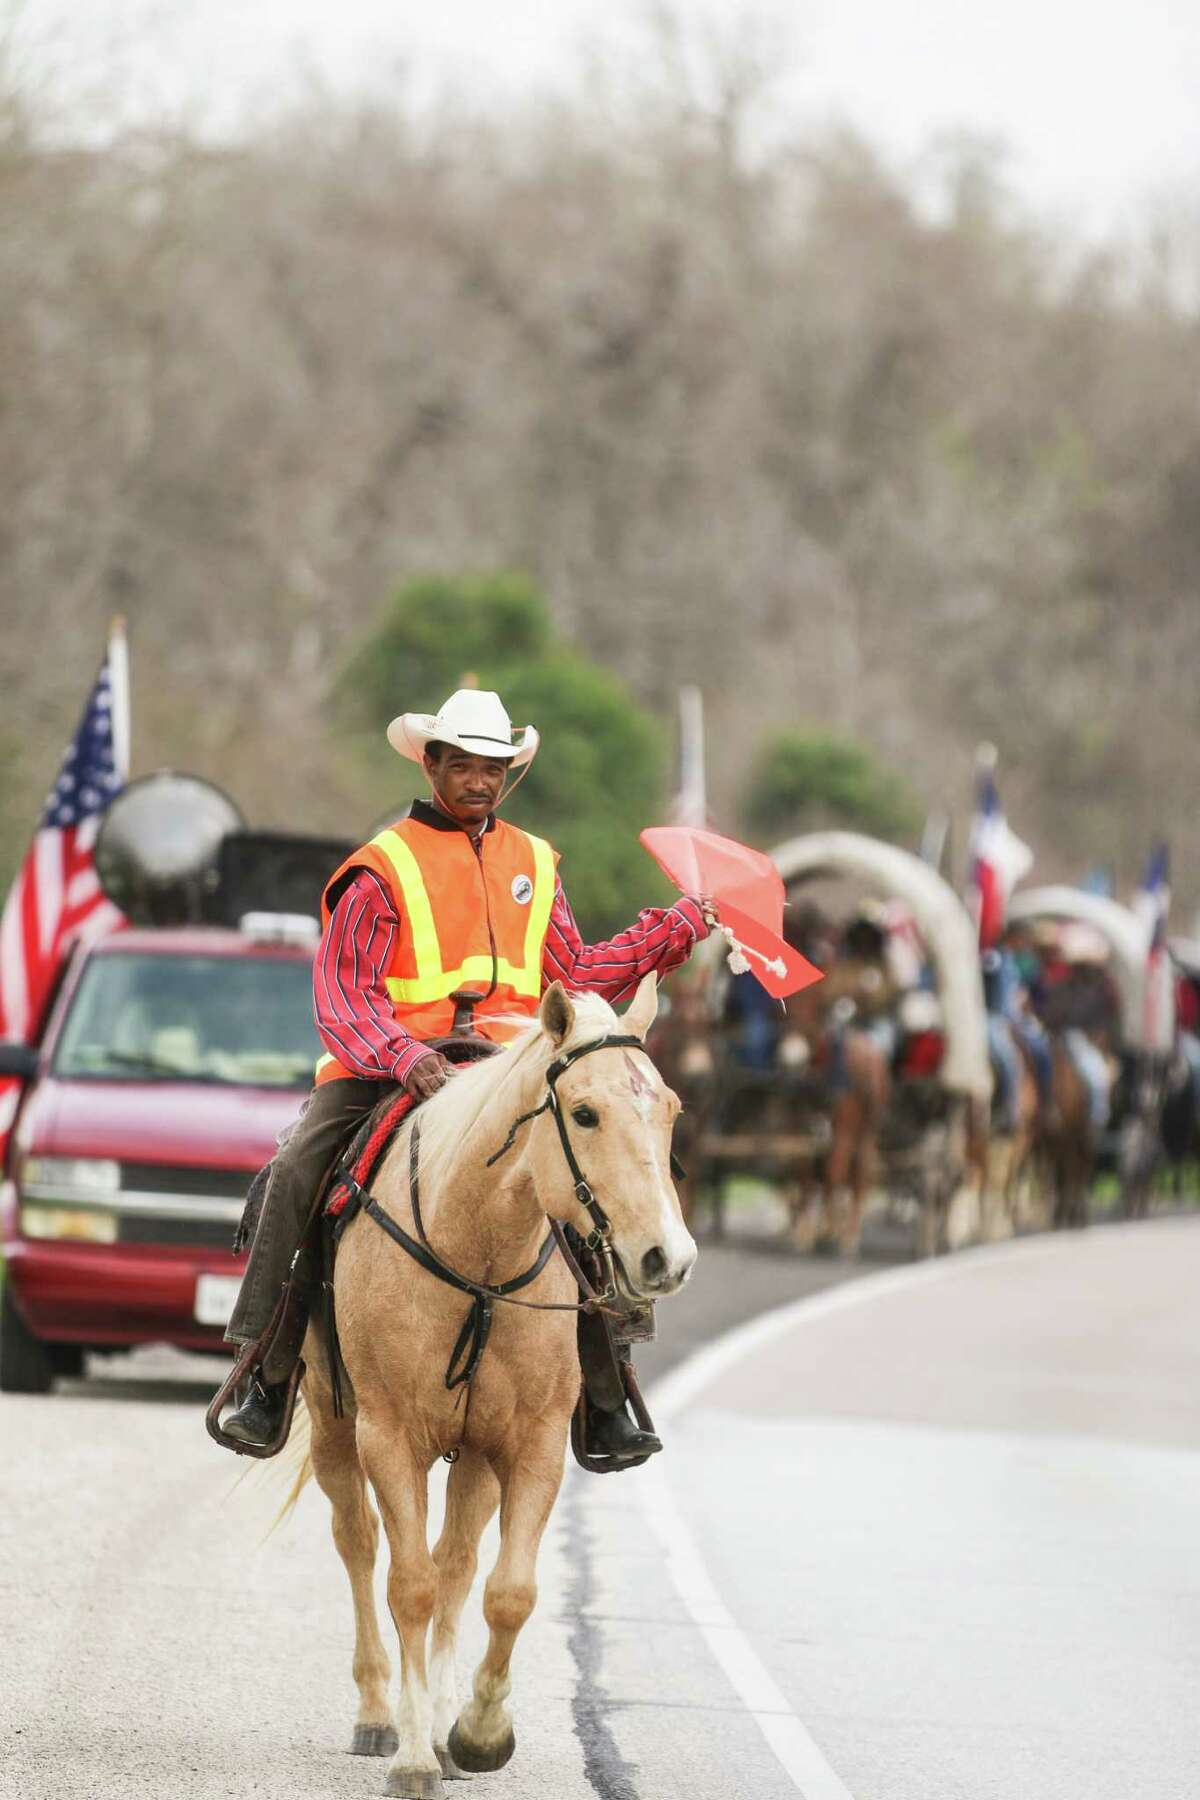 Scout Shannon Richards signals traffic away from the riders and wagons approaching as the Northeastern Trail Ride makes its way through the Dayton community on Feb. 28.